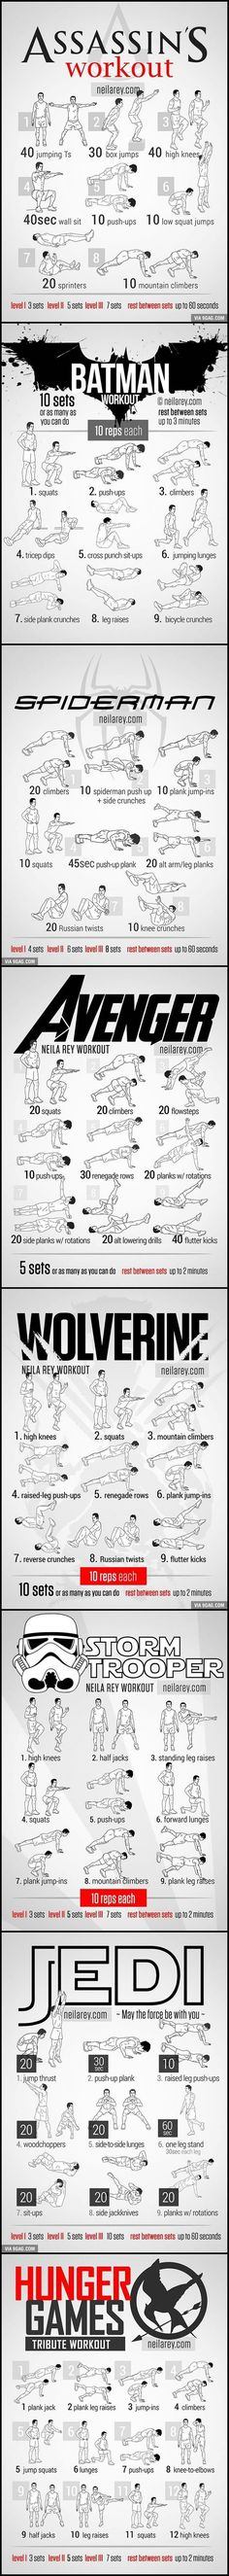 How to work out like the superheros. . ASSASSIN' S worka 10 10 low 20 sprinters l mountain climbers mil Mars level ll was level III new VIA ...